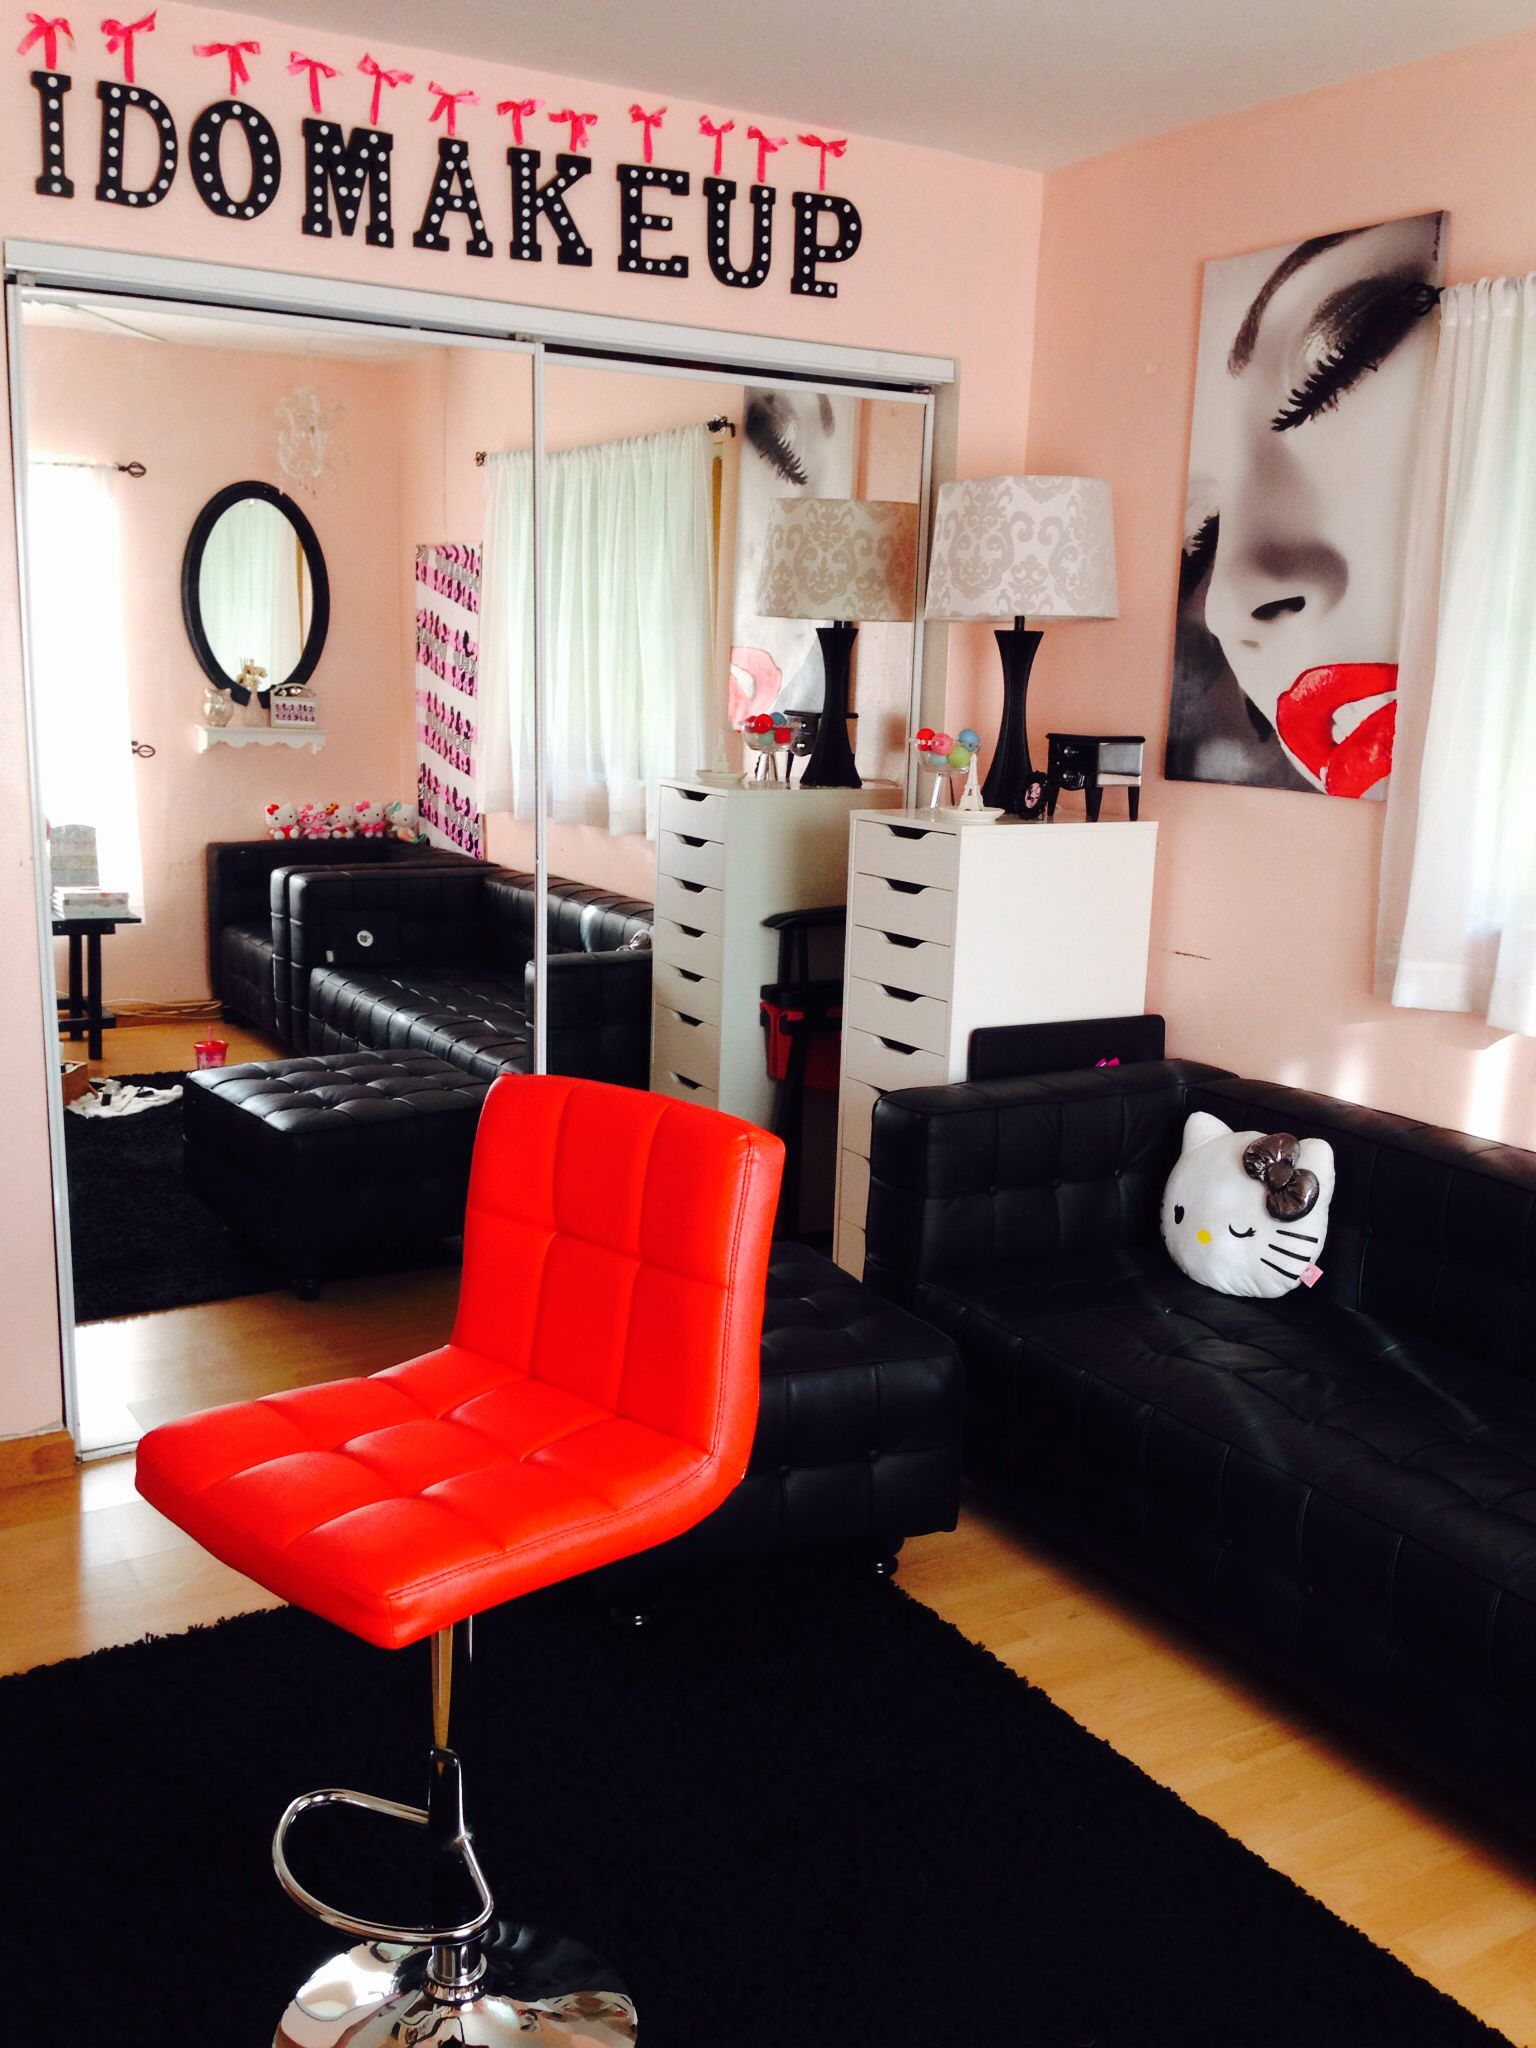 Girl Makeup Station Makeup Studio I 39m Going To Make It My Goal To Make